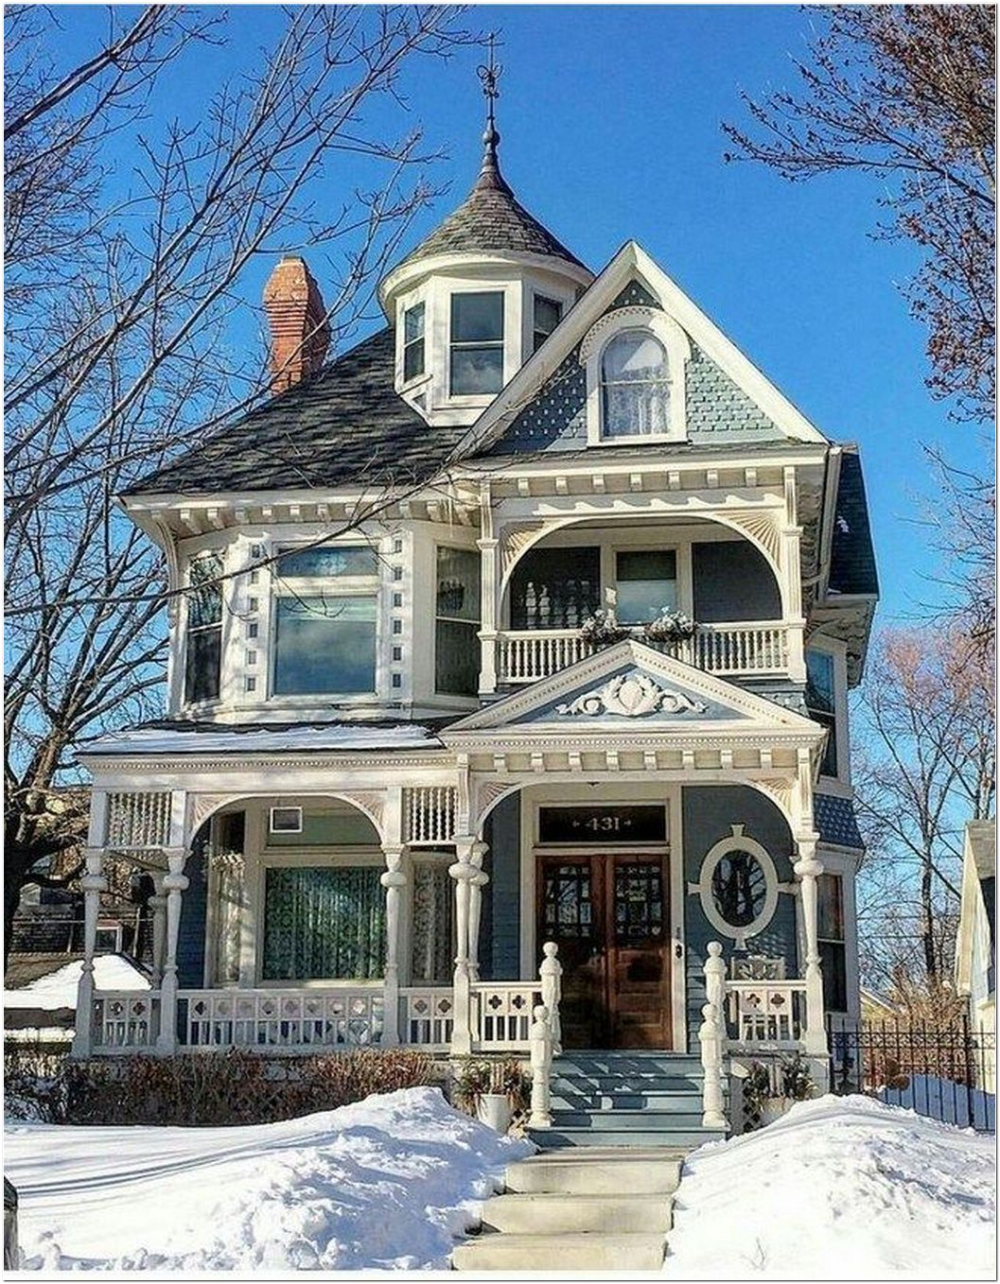 92 Dream Home Ideas Home Decorating Ideas And Interior Design 22 In 2020 Victorian Homes Exterior Cottage House Exterior House Architecture Design